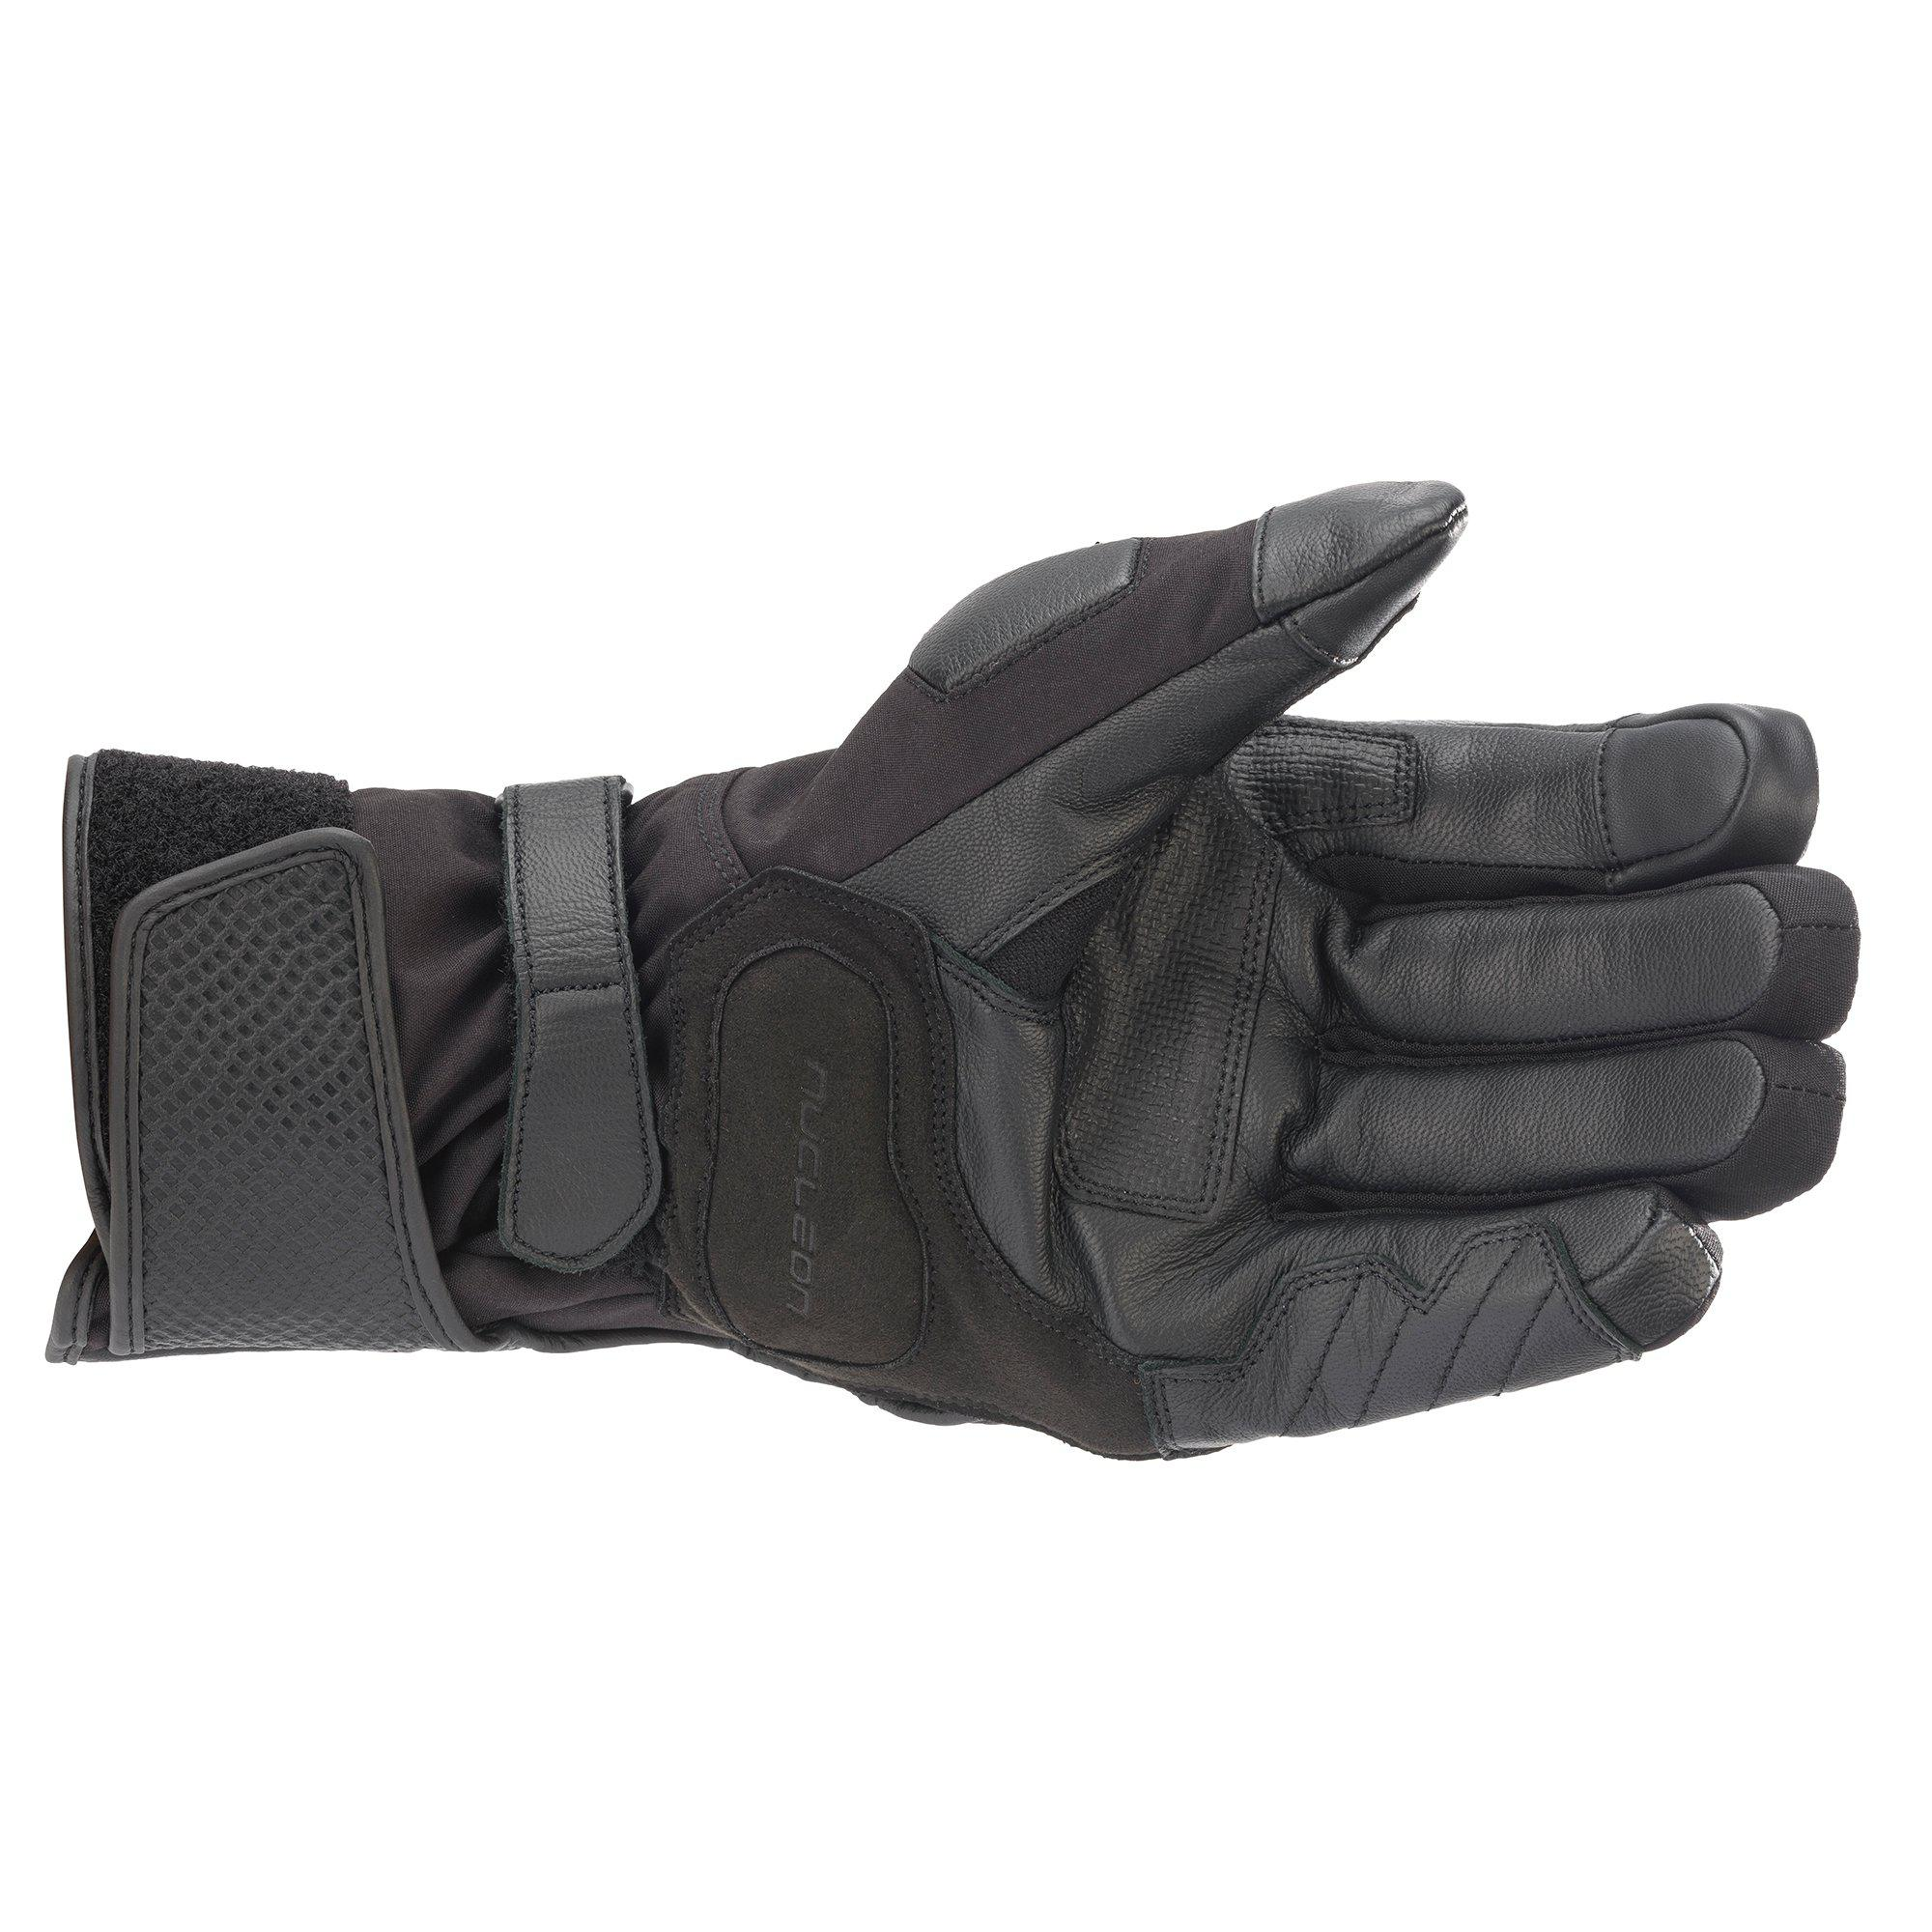 Wr-1 V2 Gore-Tex® Gloves